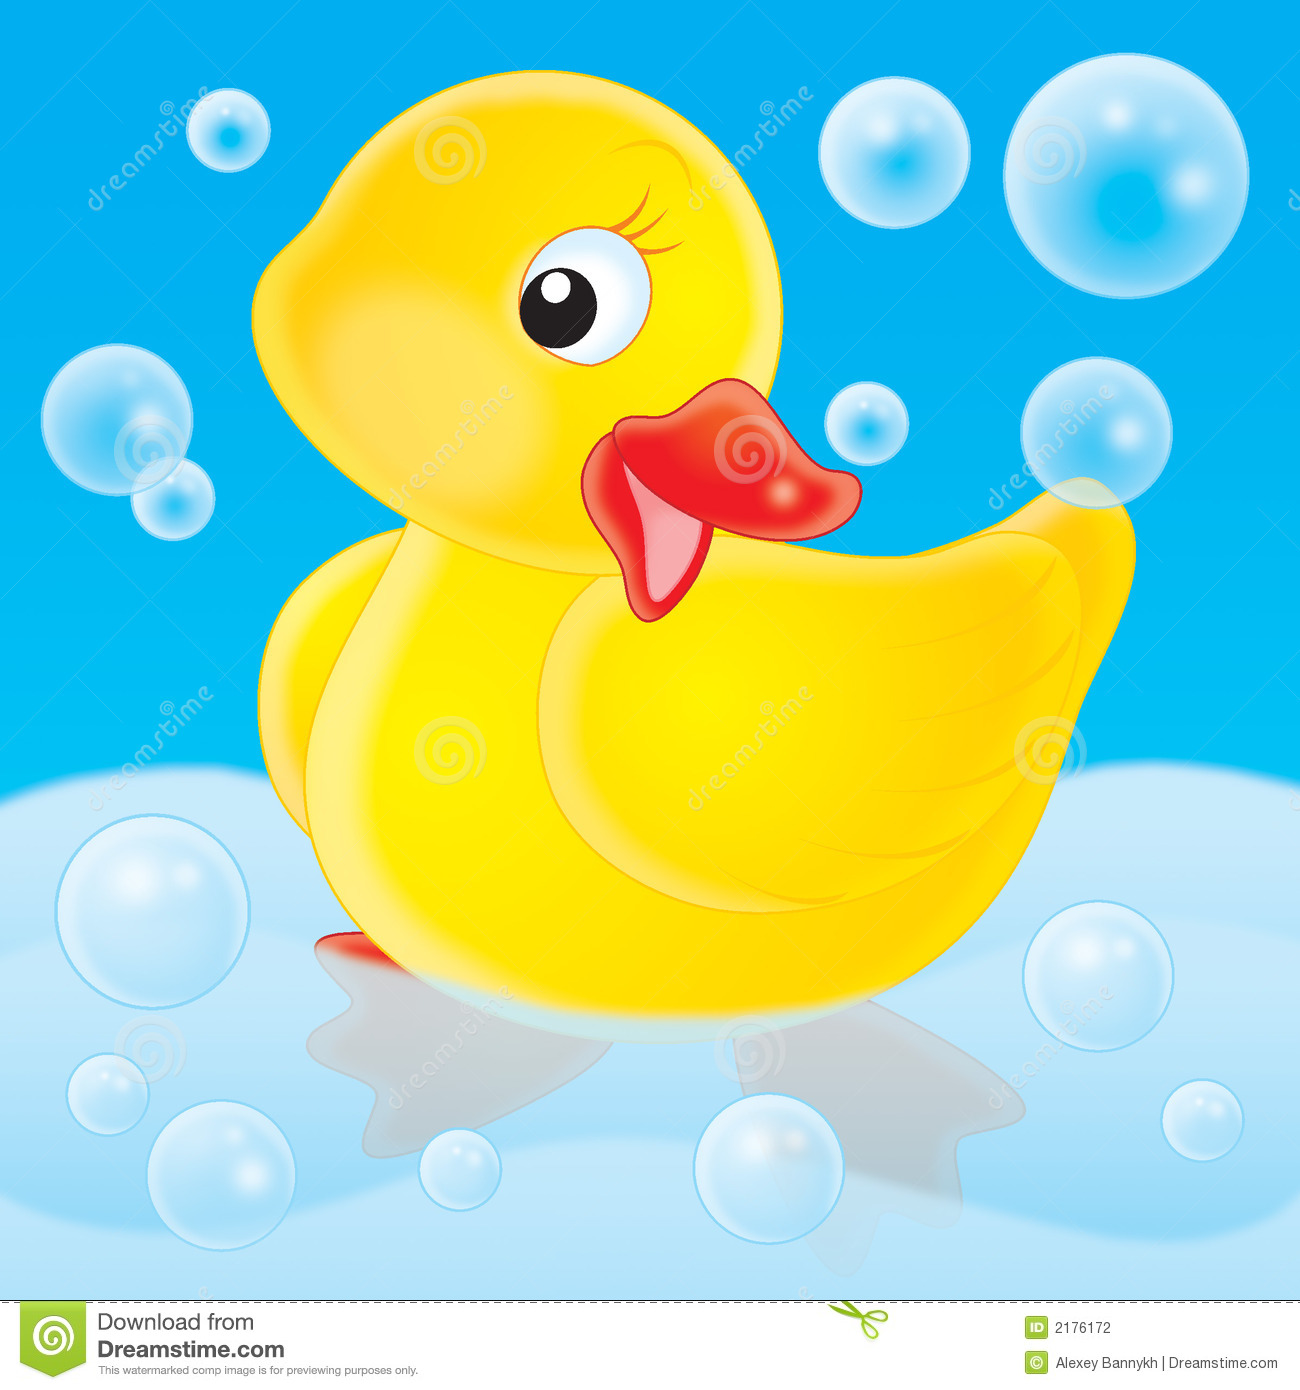 Duckling clipart #2, Download drawings